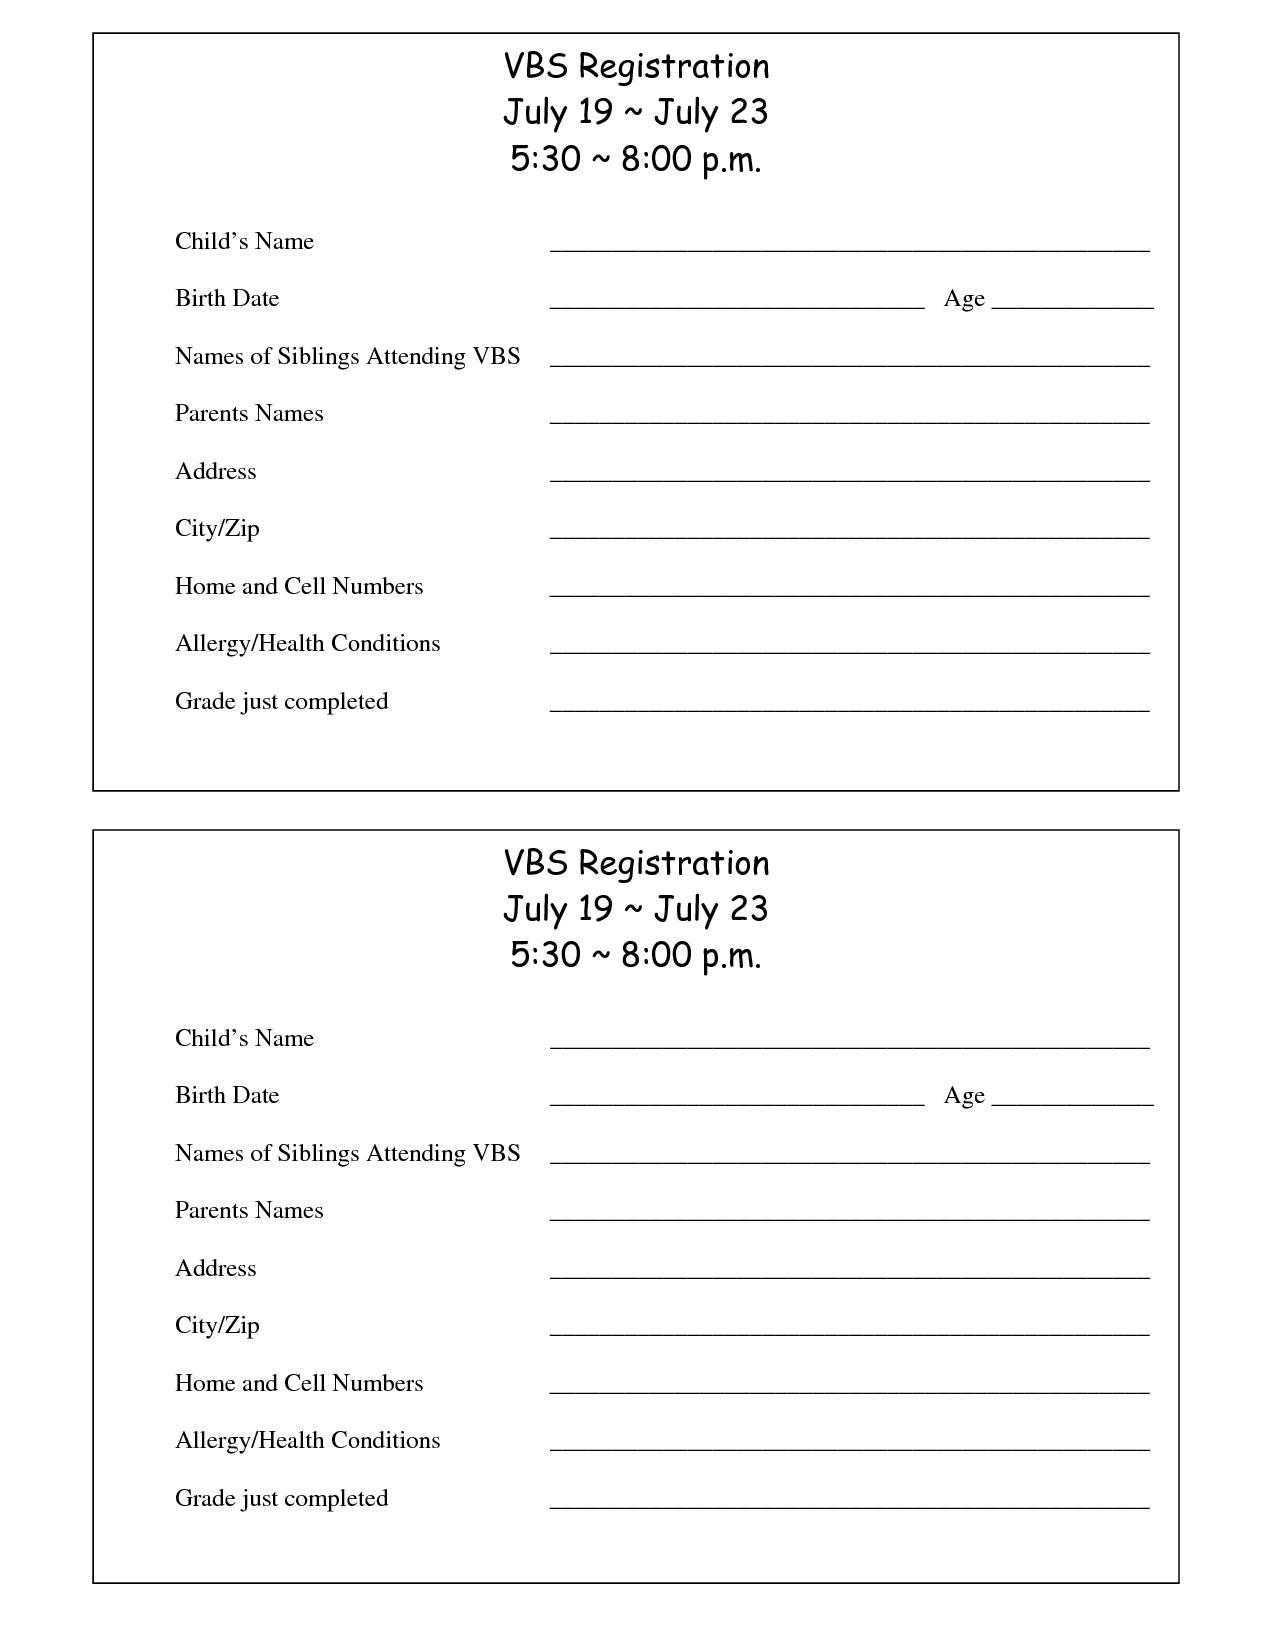 Registration forms Template Free Printable Vbs Registration form Template